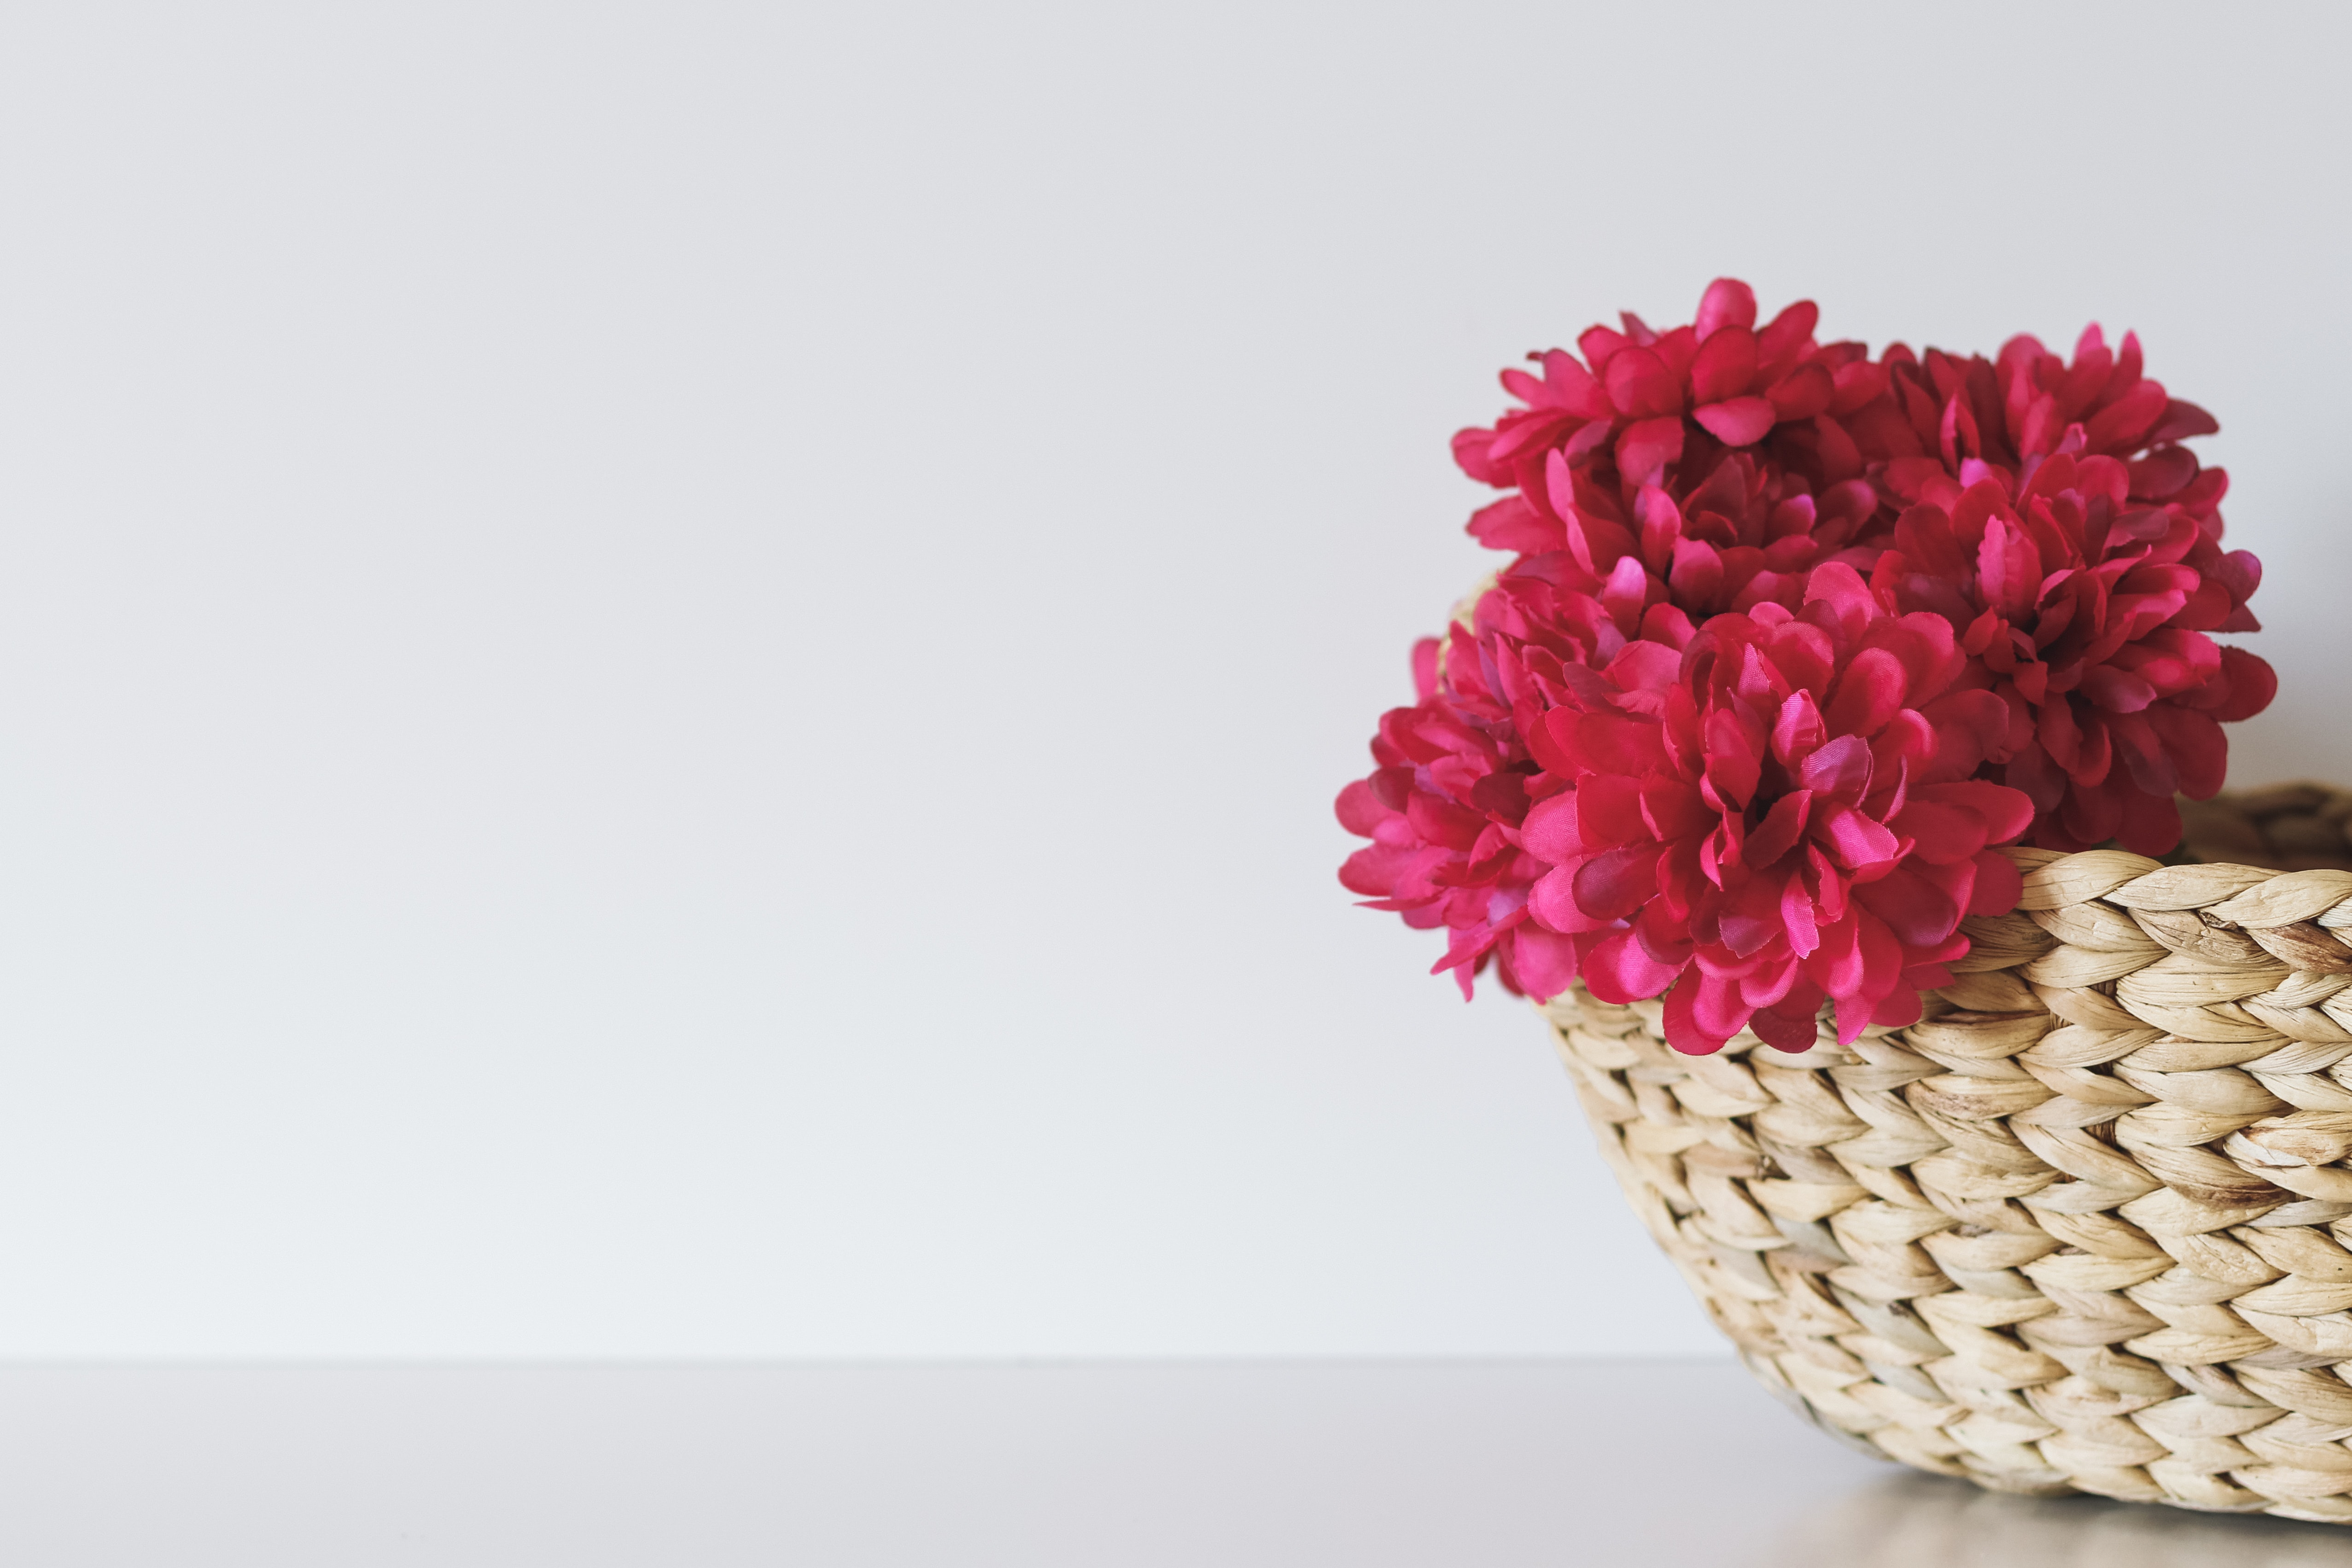 Red flowers in a wicker basket against a white background